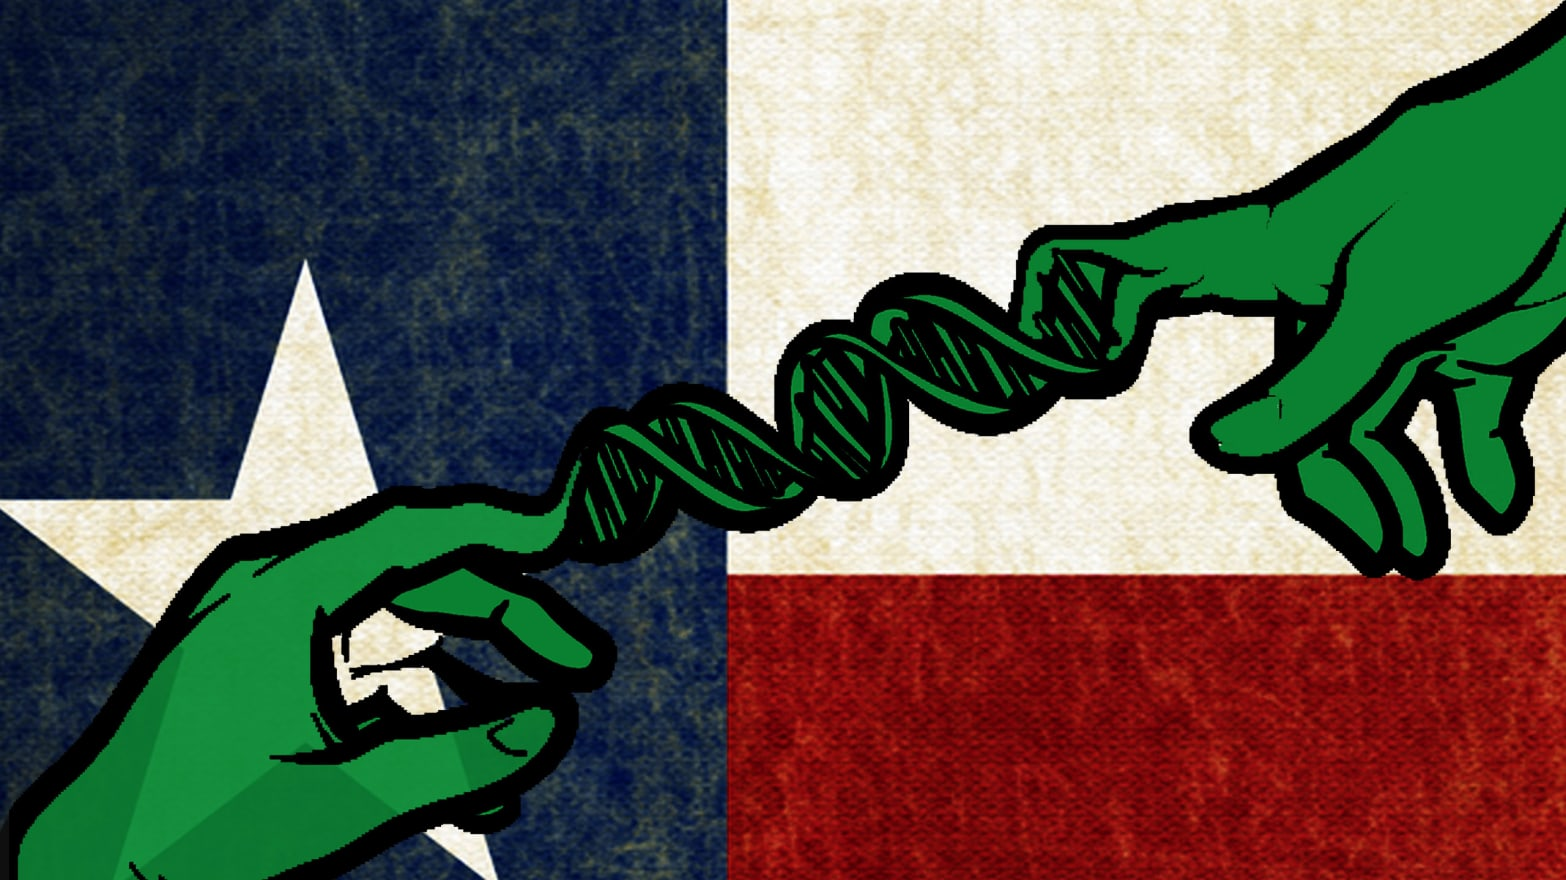 5da6d4a6c5 Creationism in Texas Could Go Extinct on Election Day